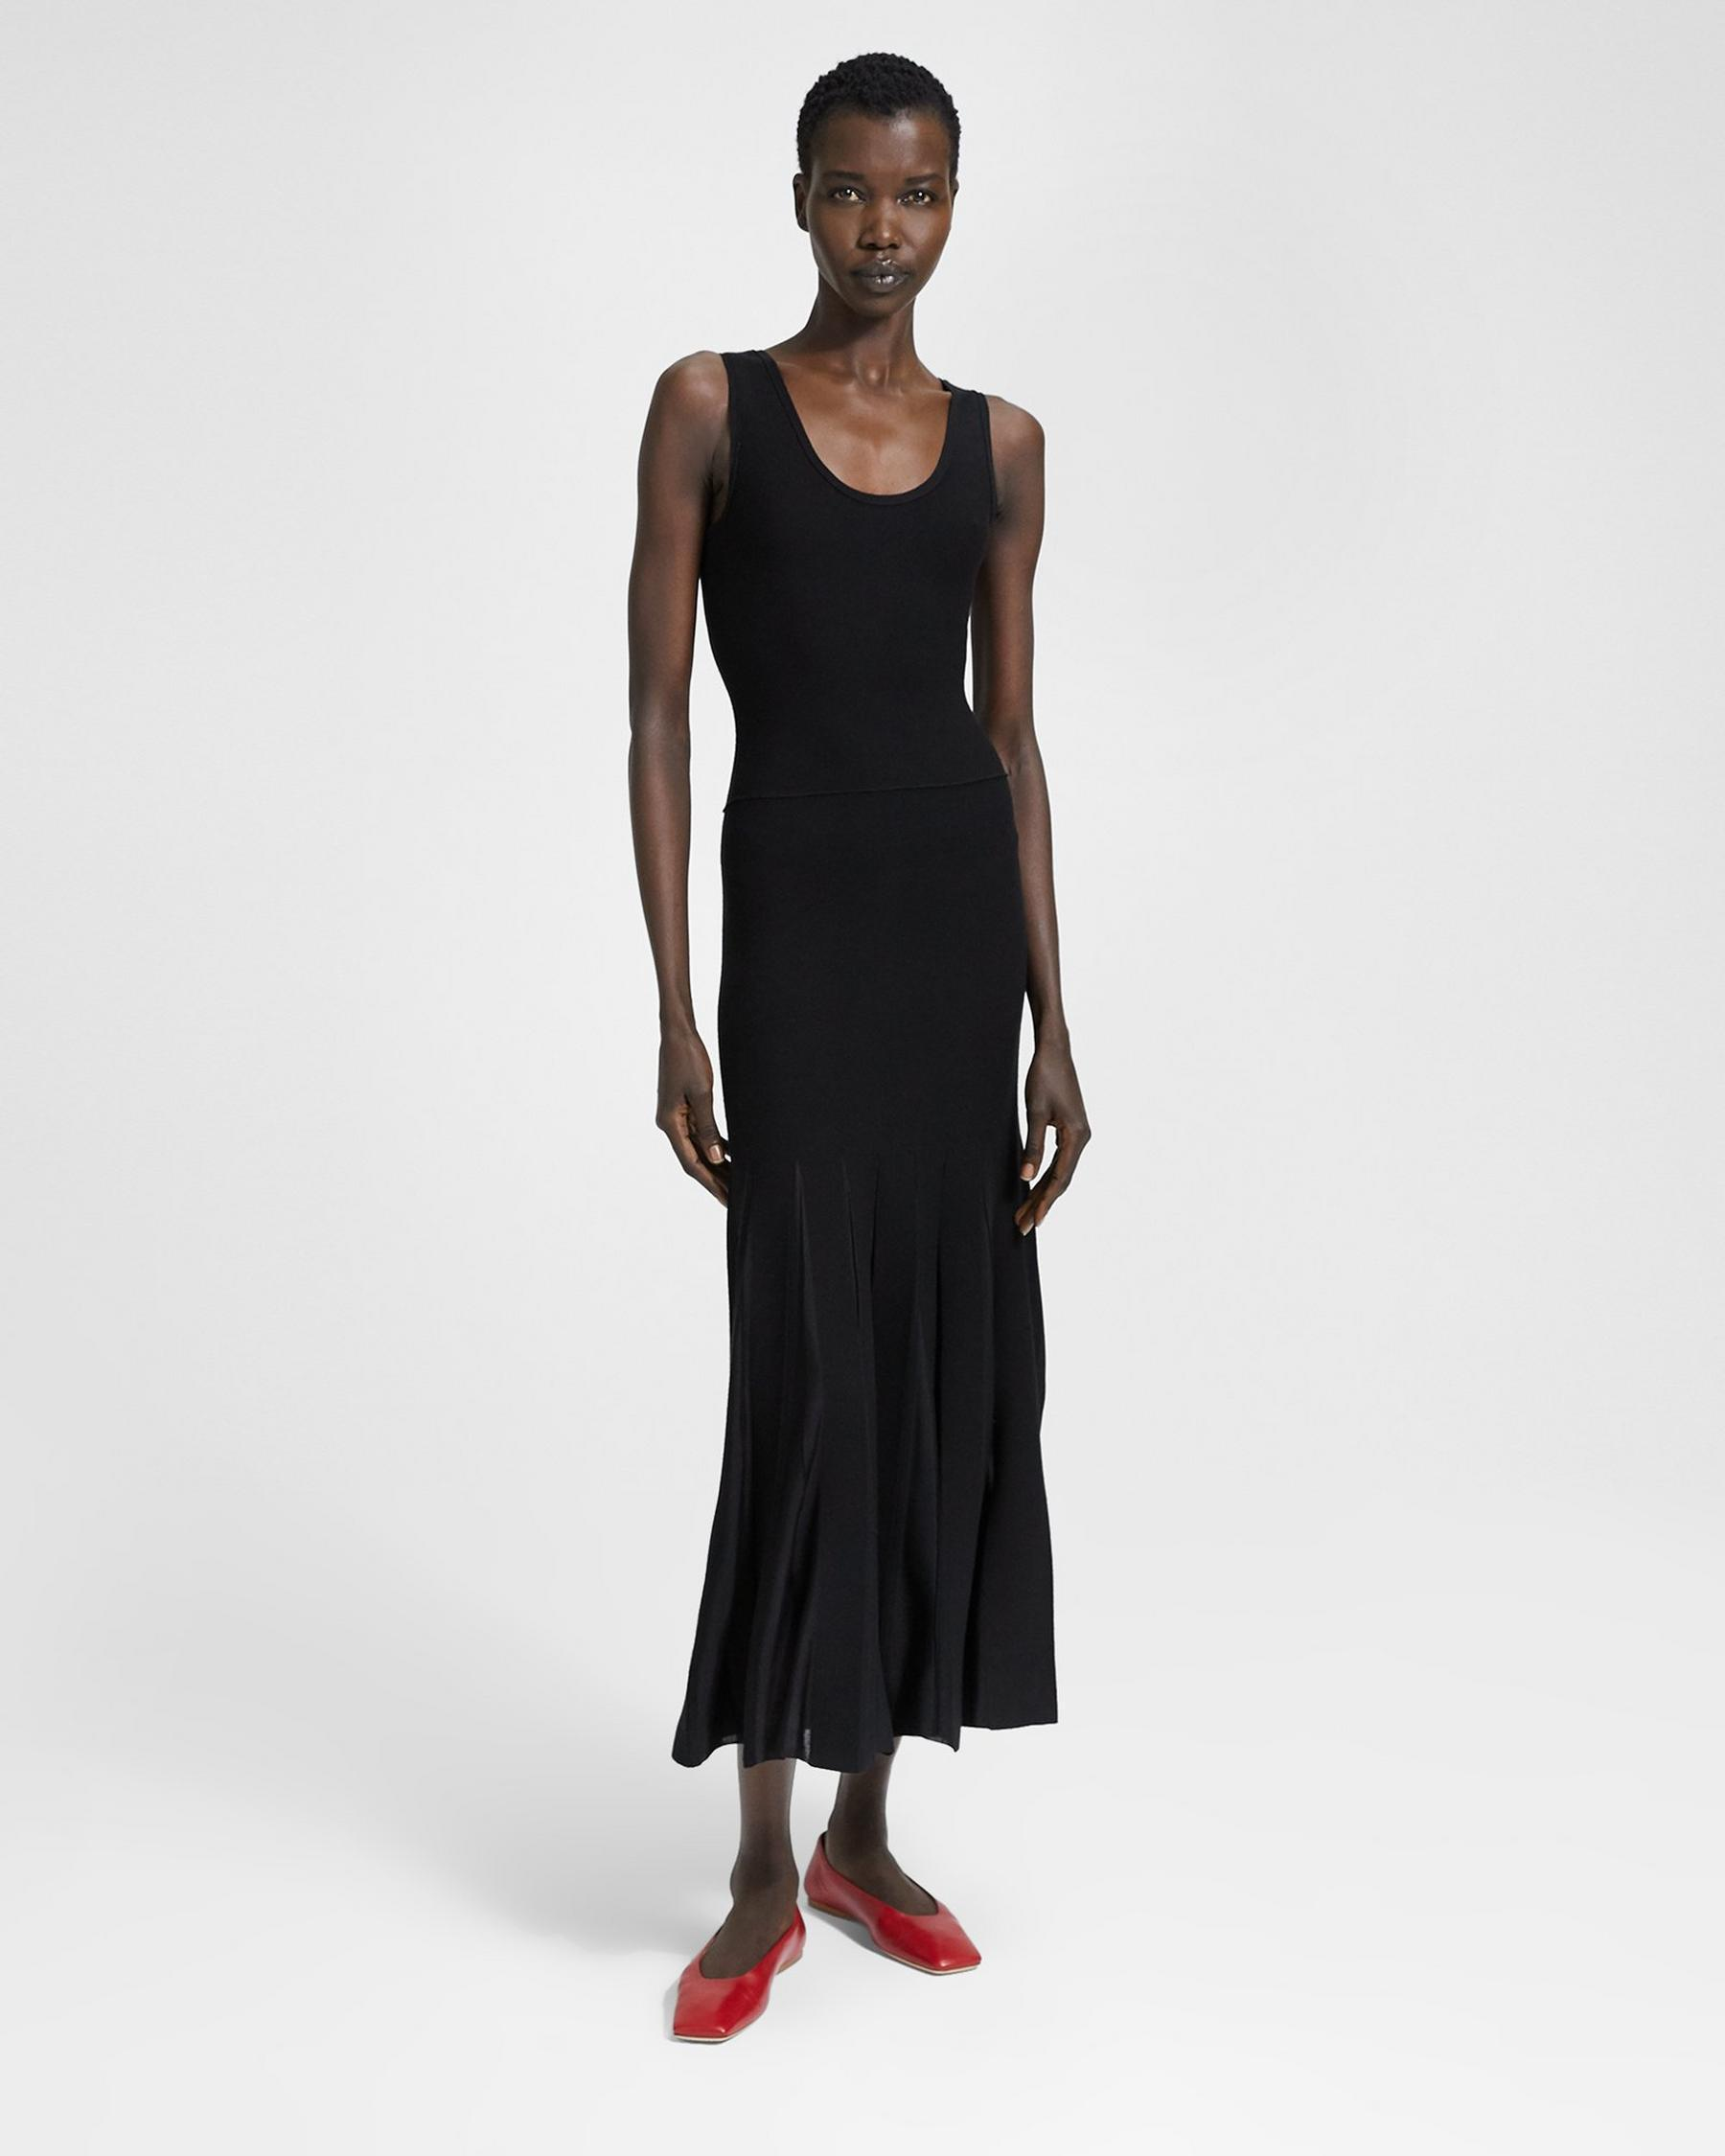 e08cfb932a Lyst - Theory Pleated Tank Dress Black in Black - Save 60%